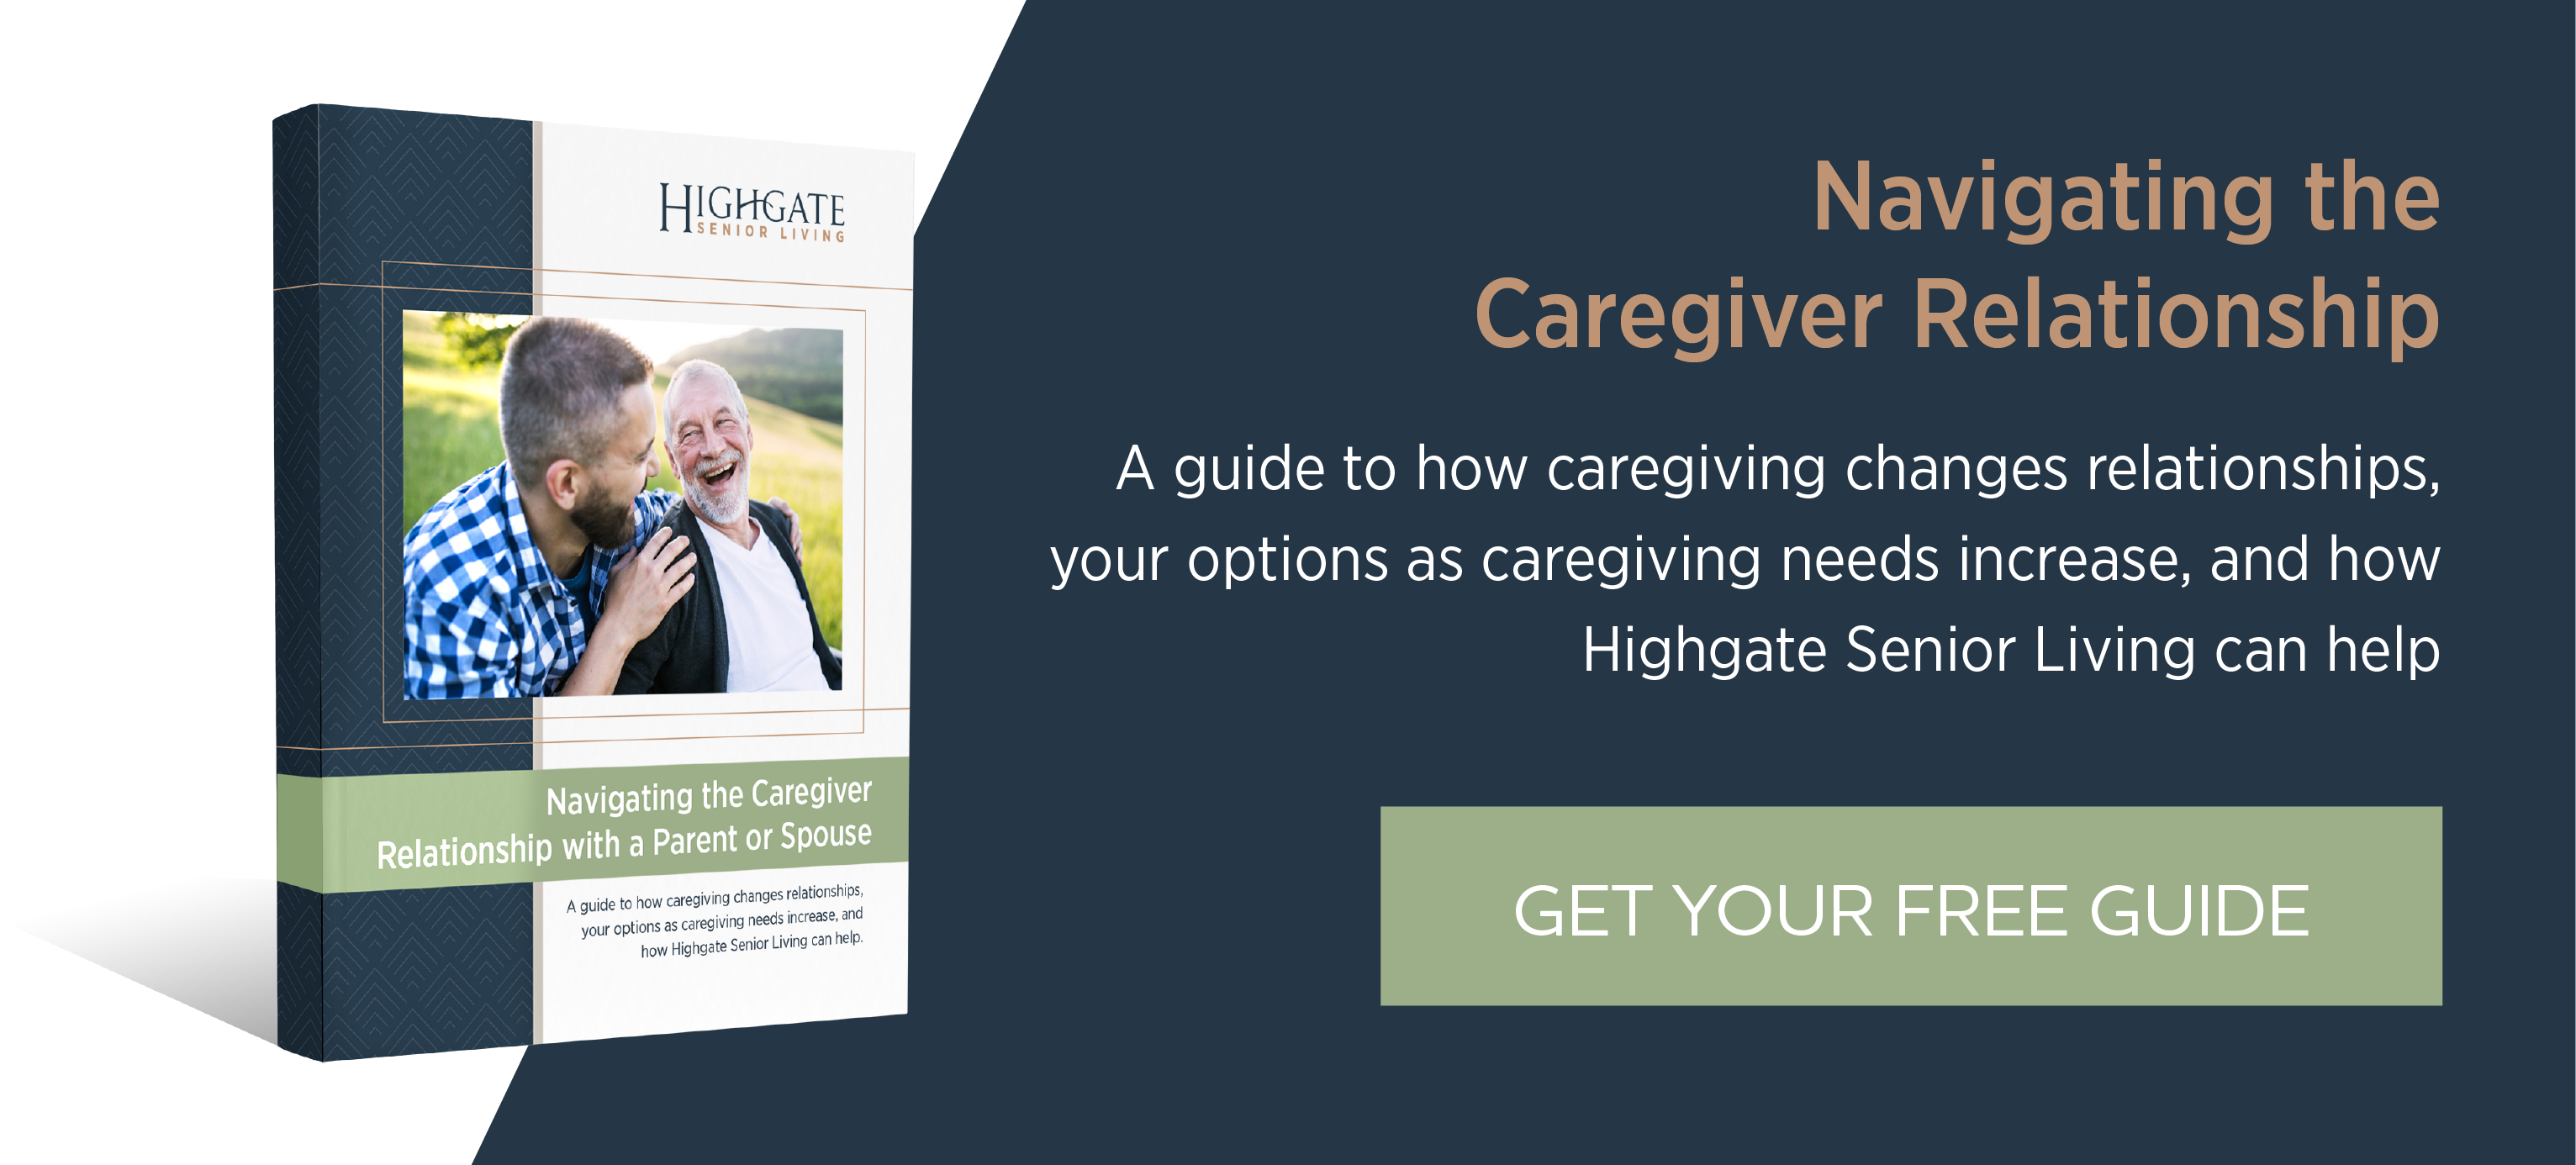 Navigating the Caregiver Relationship with a Parent or Spouse